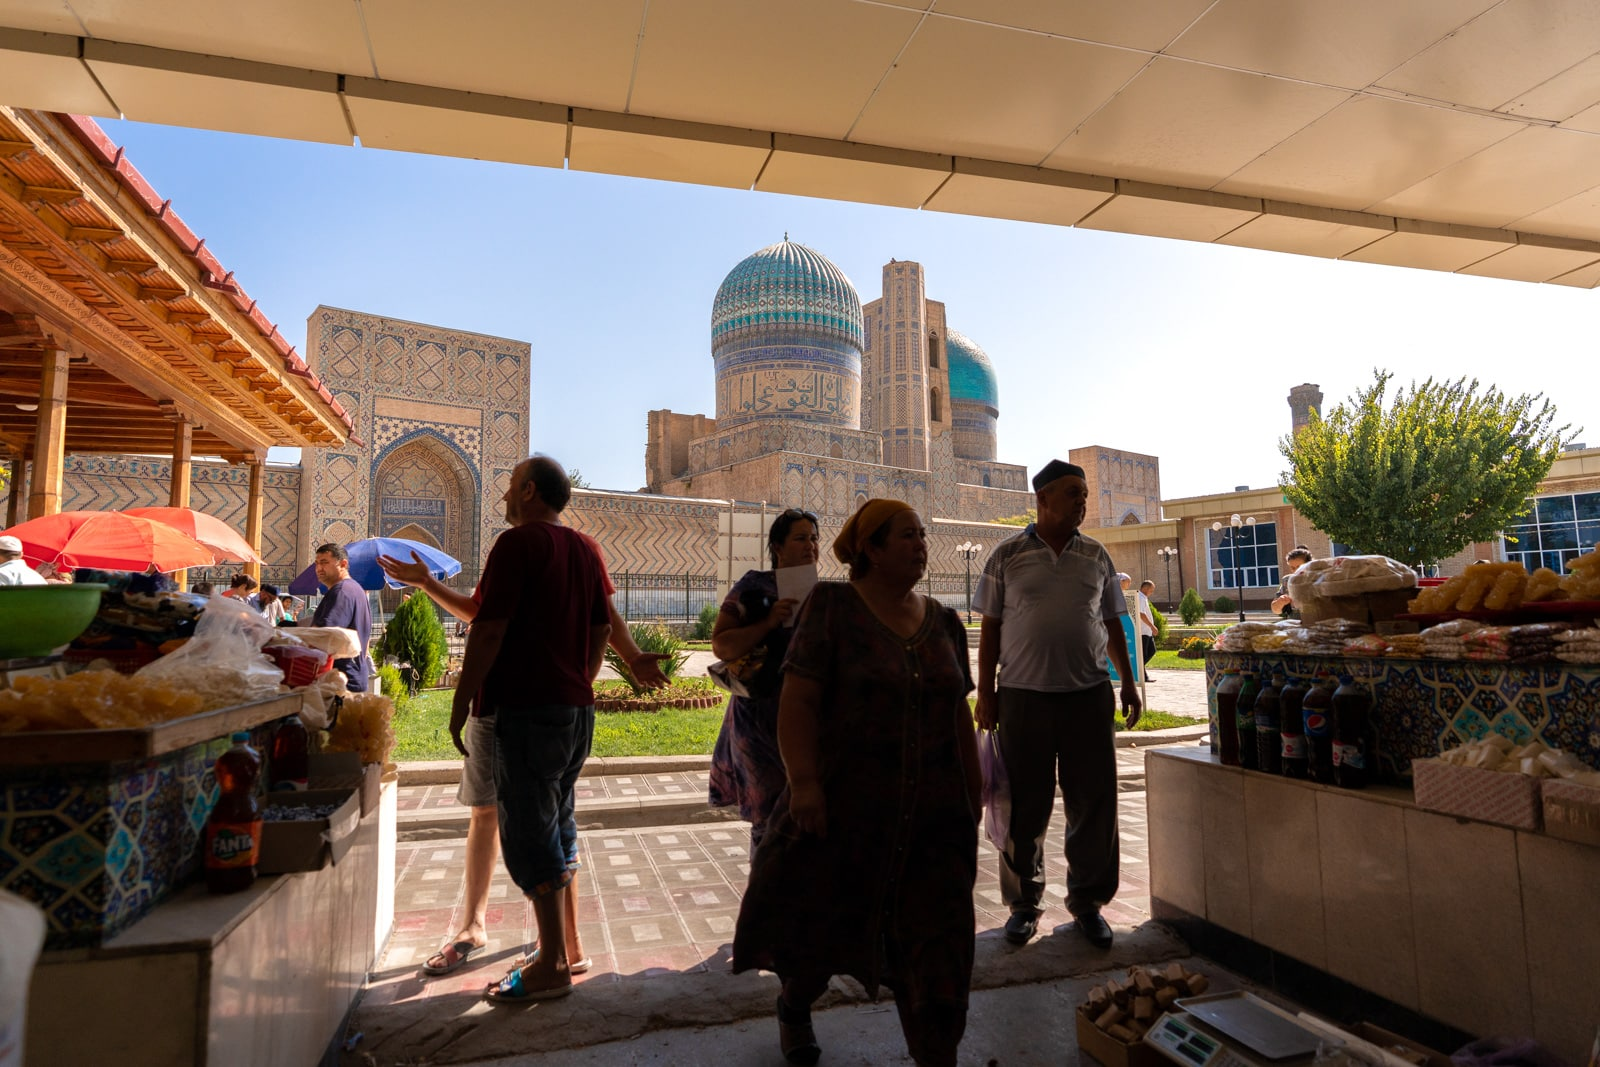 Shoppers at the Siab bazaar in Samarkand, Uzbekistan